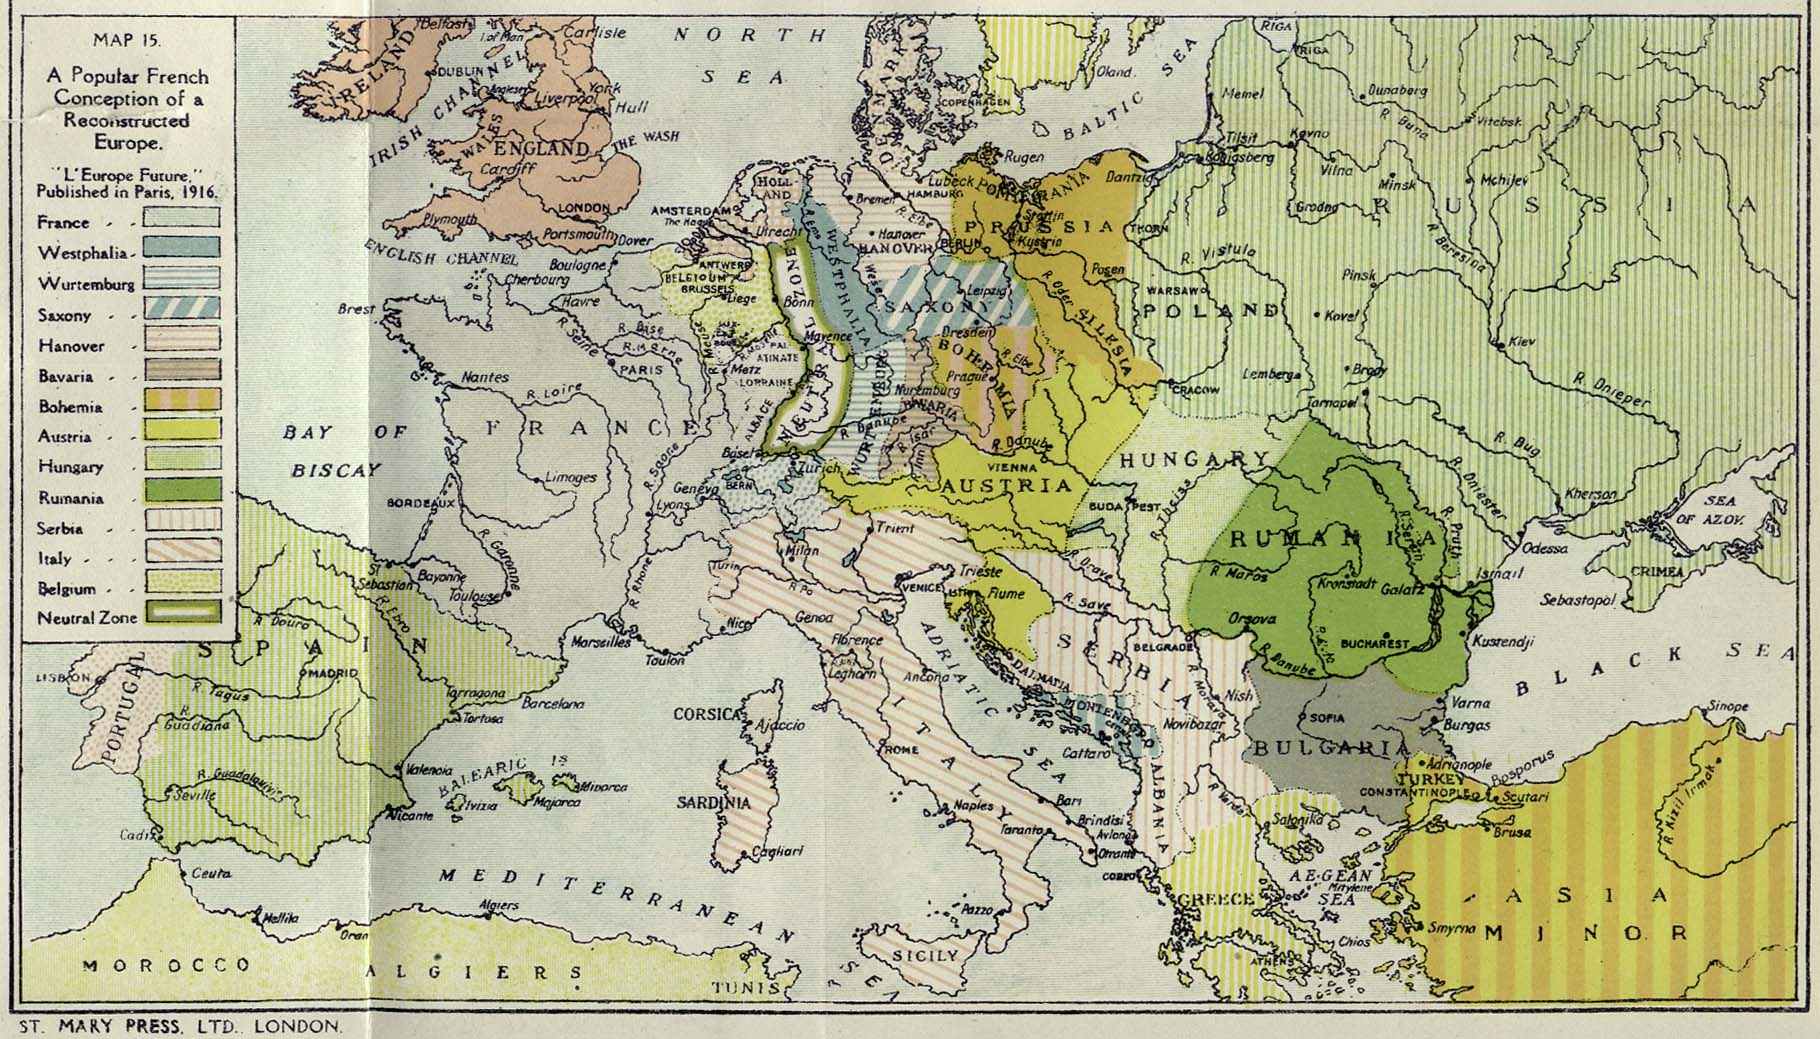 A French map of 'Reconstructed Europe', 1916